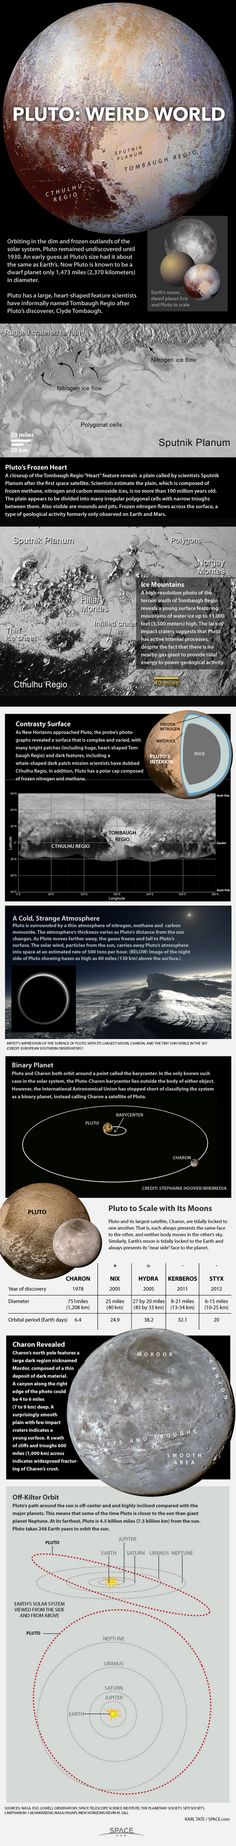 Pluto's weird features explained in infographic. Scientist's current view of Pluto after flyby, July 2015